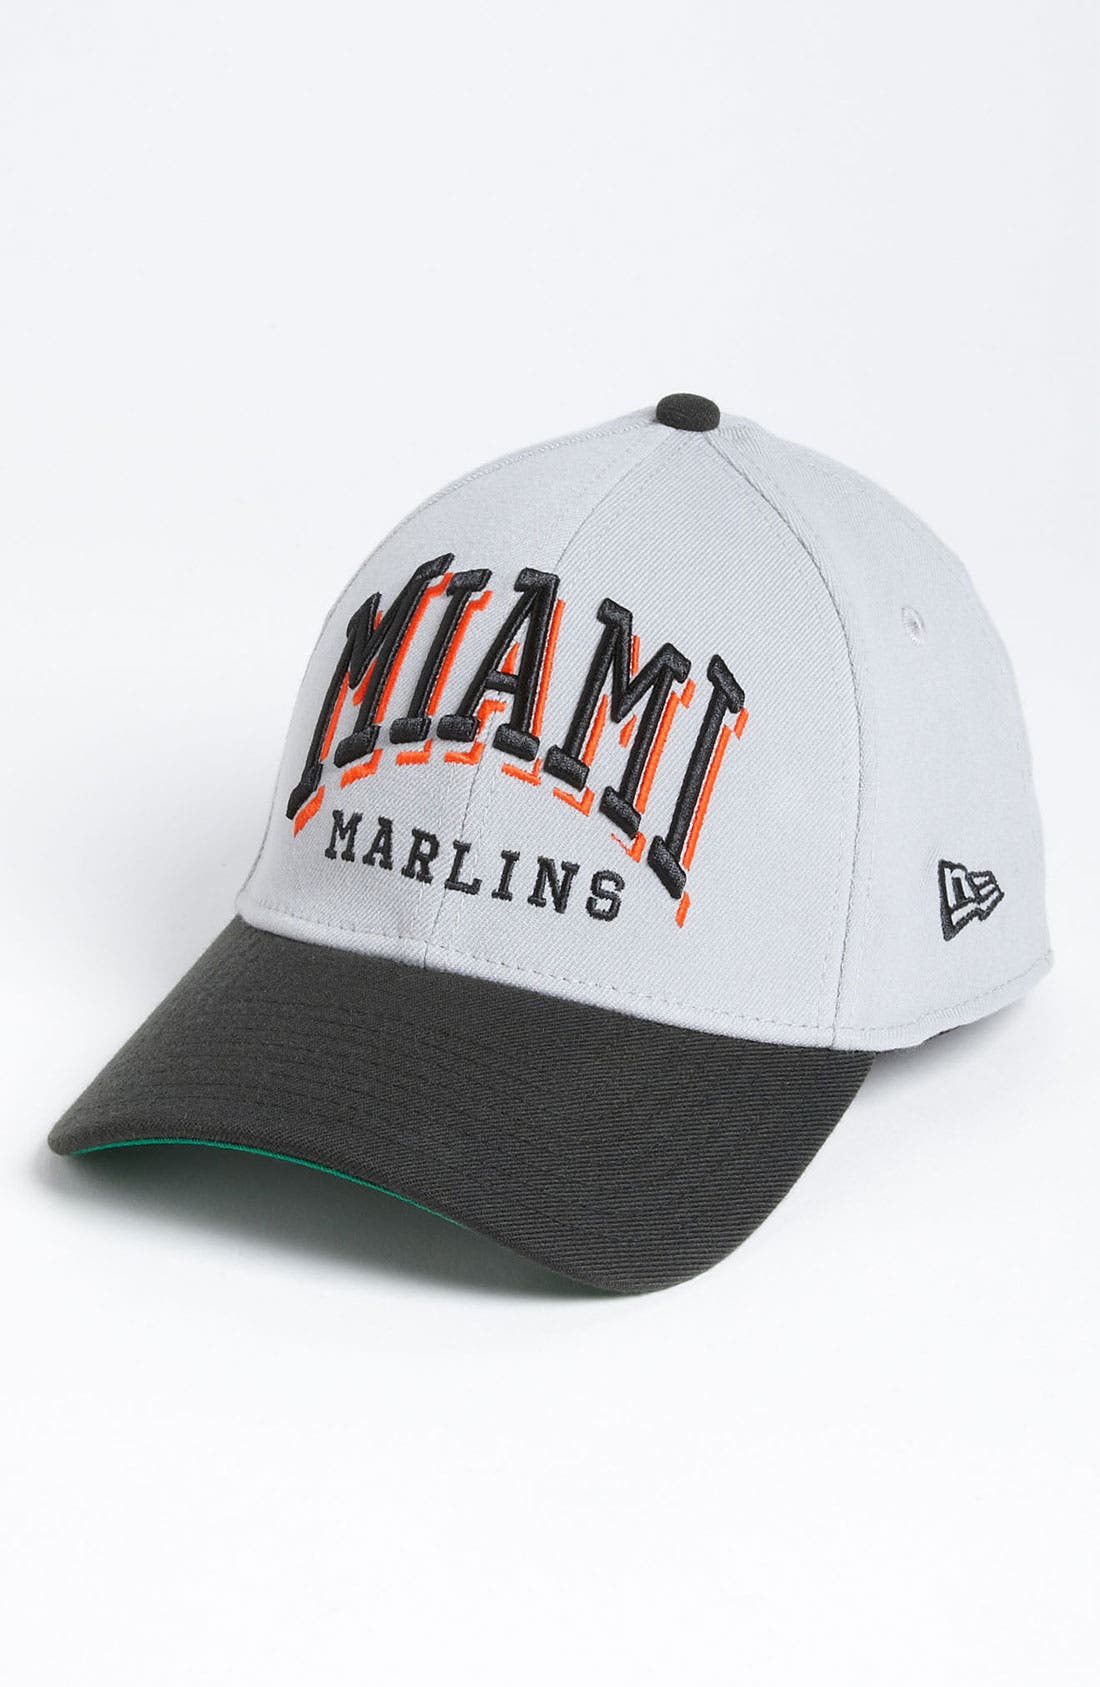 Alternate Image 1 Selected - New Era Cap 'Miami Marlins - Arch Mark' Fitted Baseball Cap